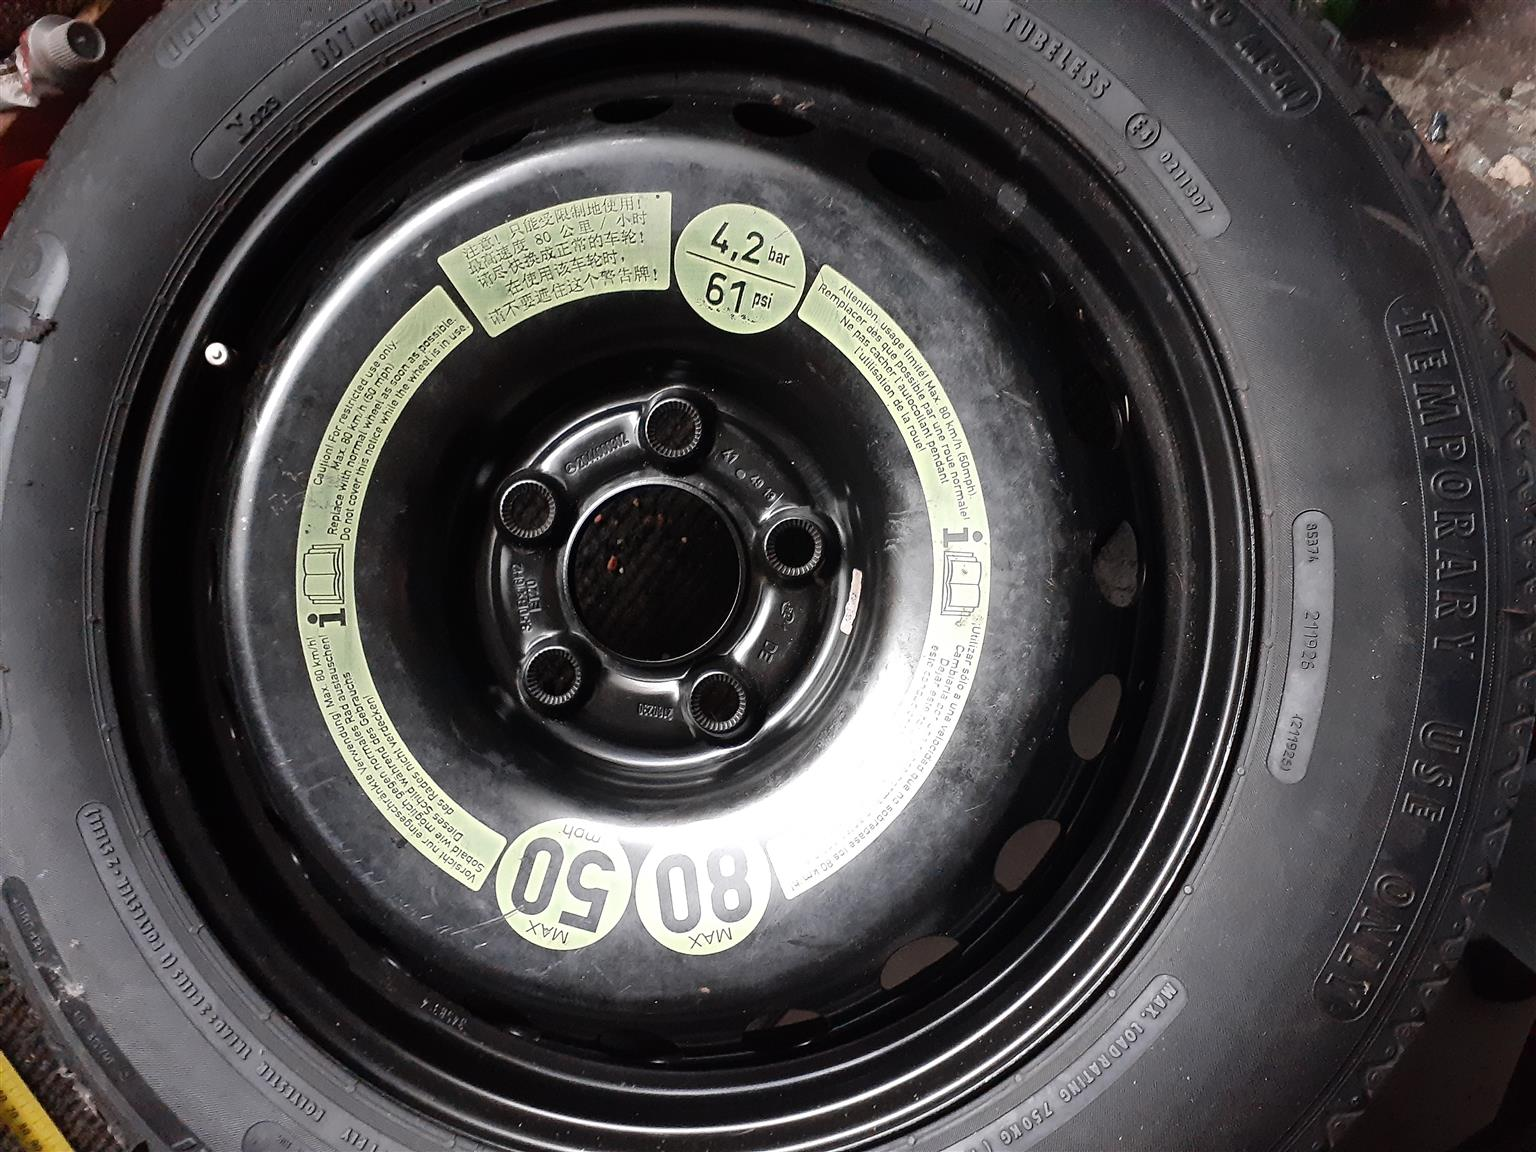 Genuine Mercedes Benz Spare wheel emergency kit to fit A class and C class Merc